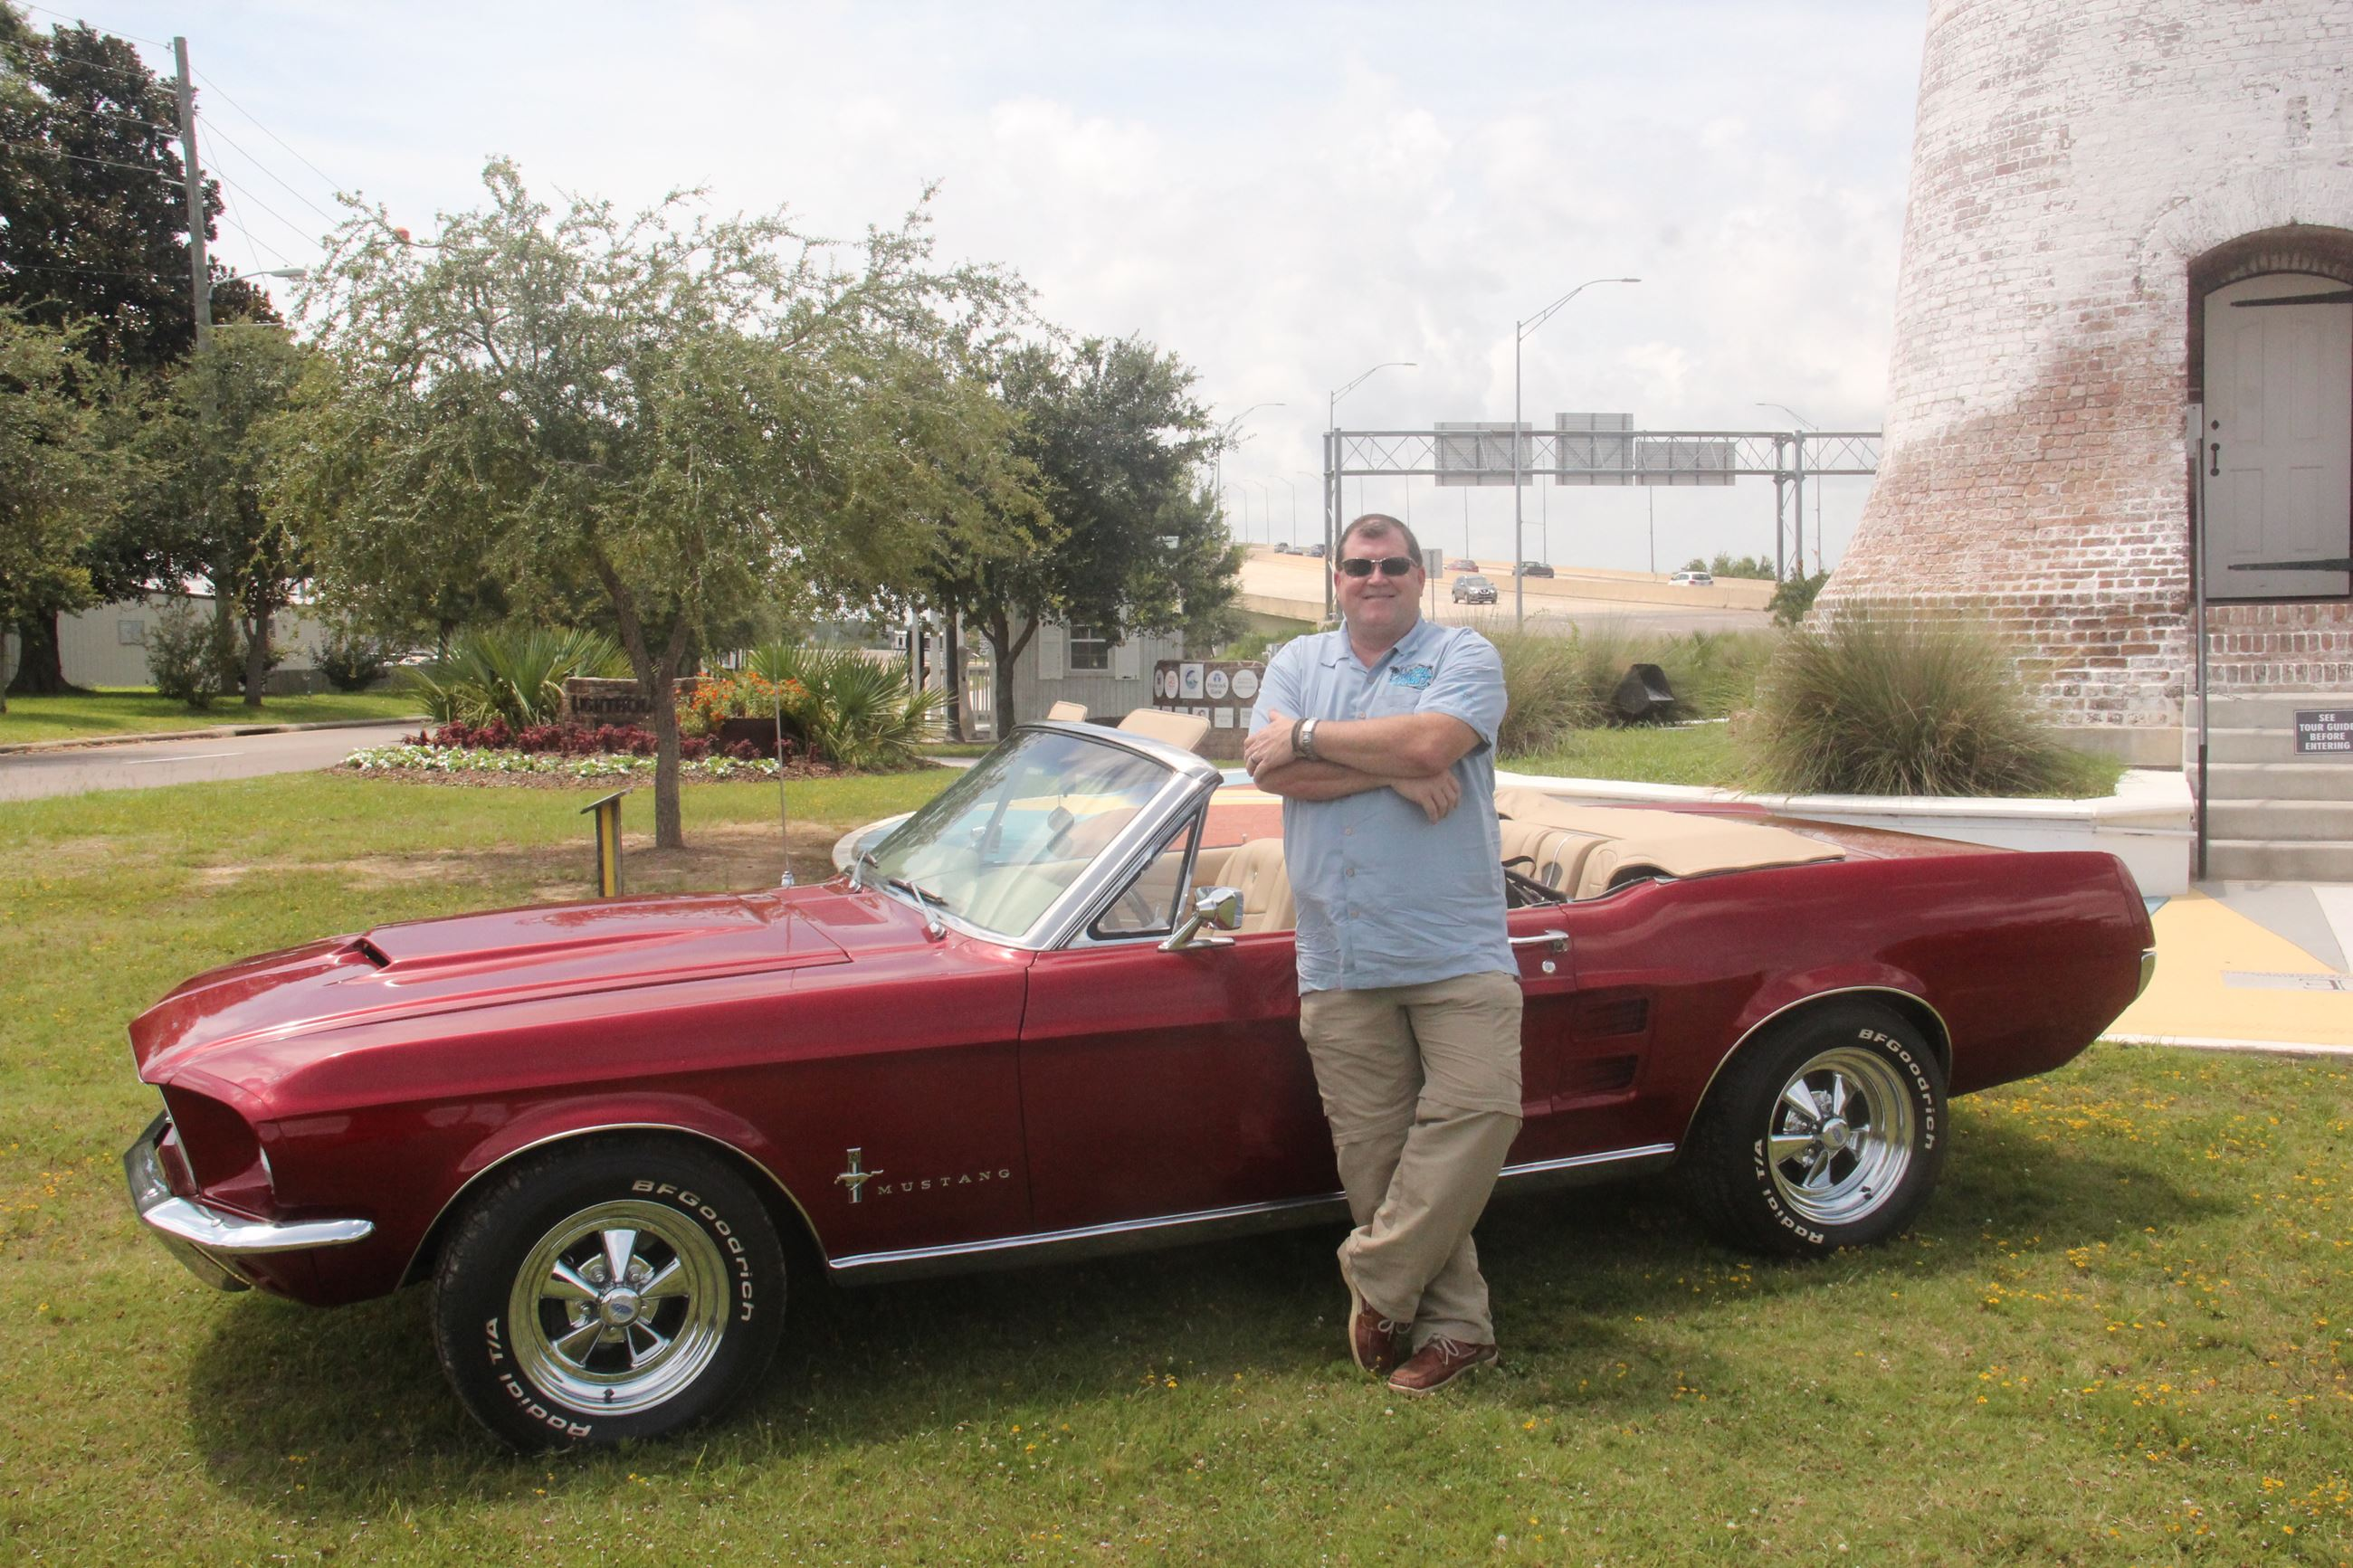 Mayor Maxwell with red mustang in front of the white lighthouse